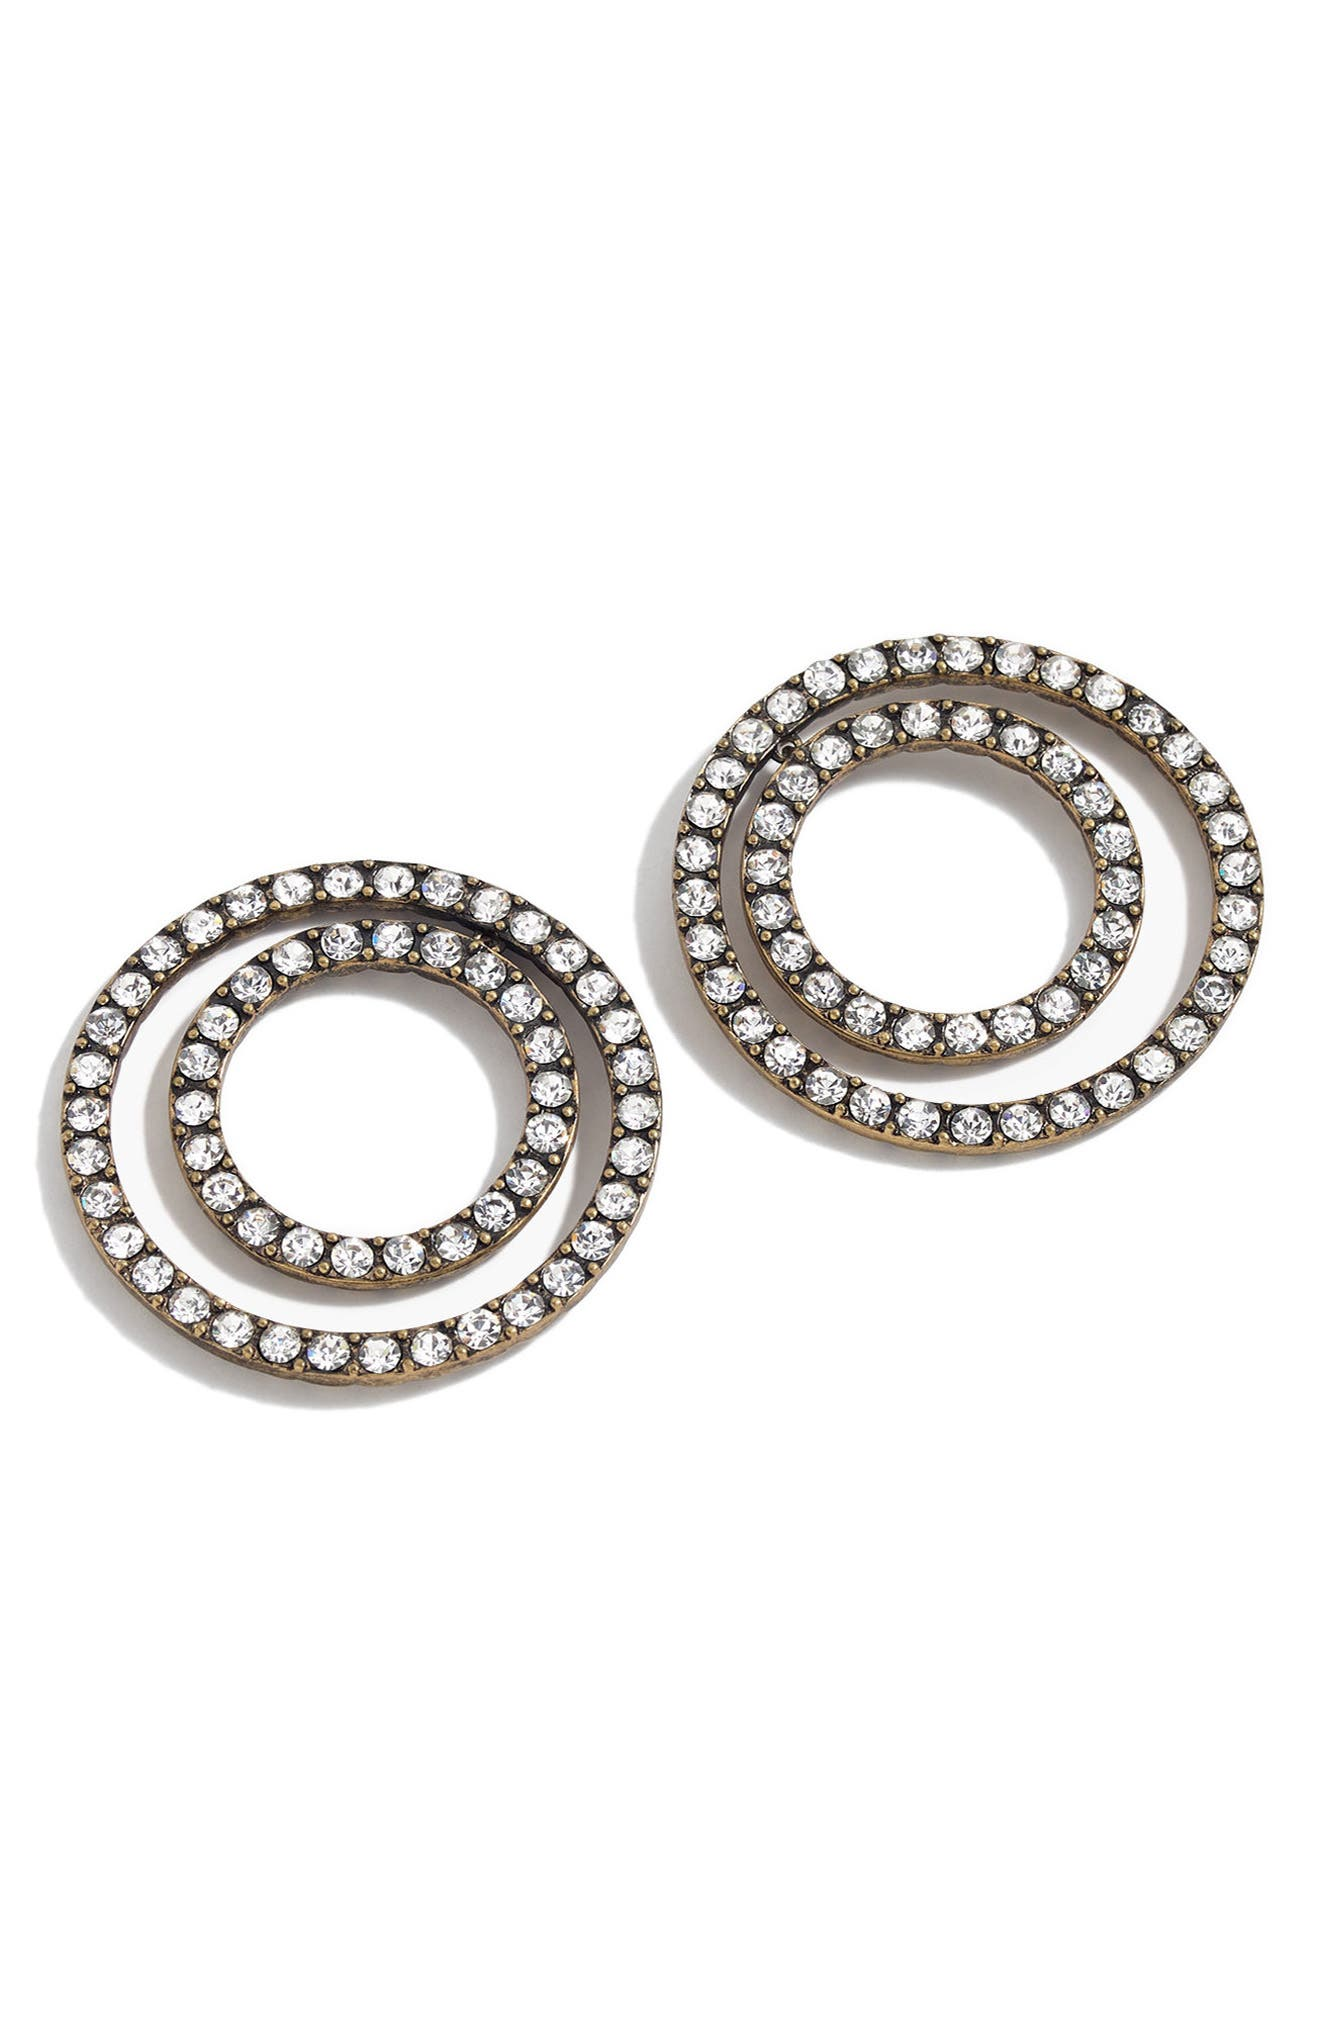 Alternate Image 1 Selected - J.Crew Sparkle Double Circle Earrings